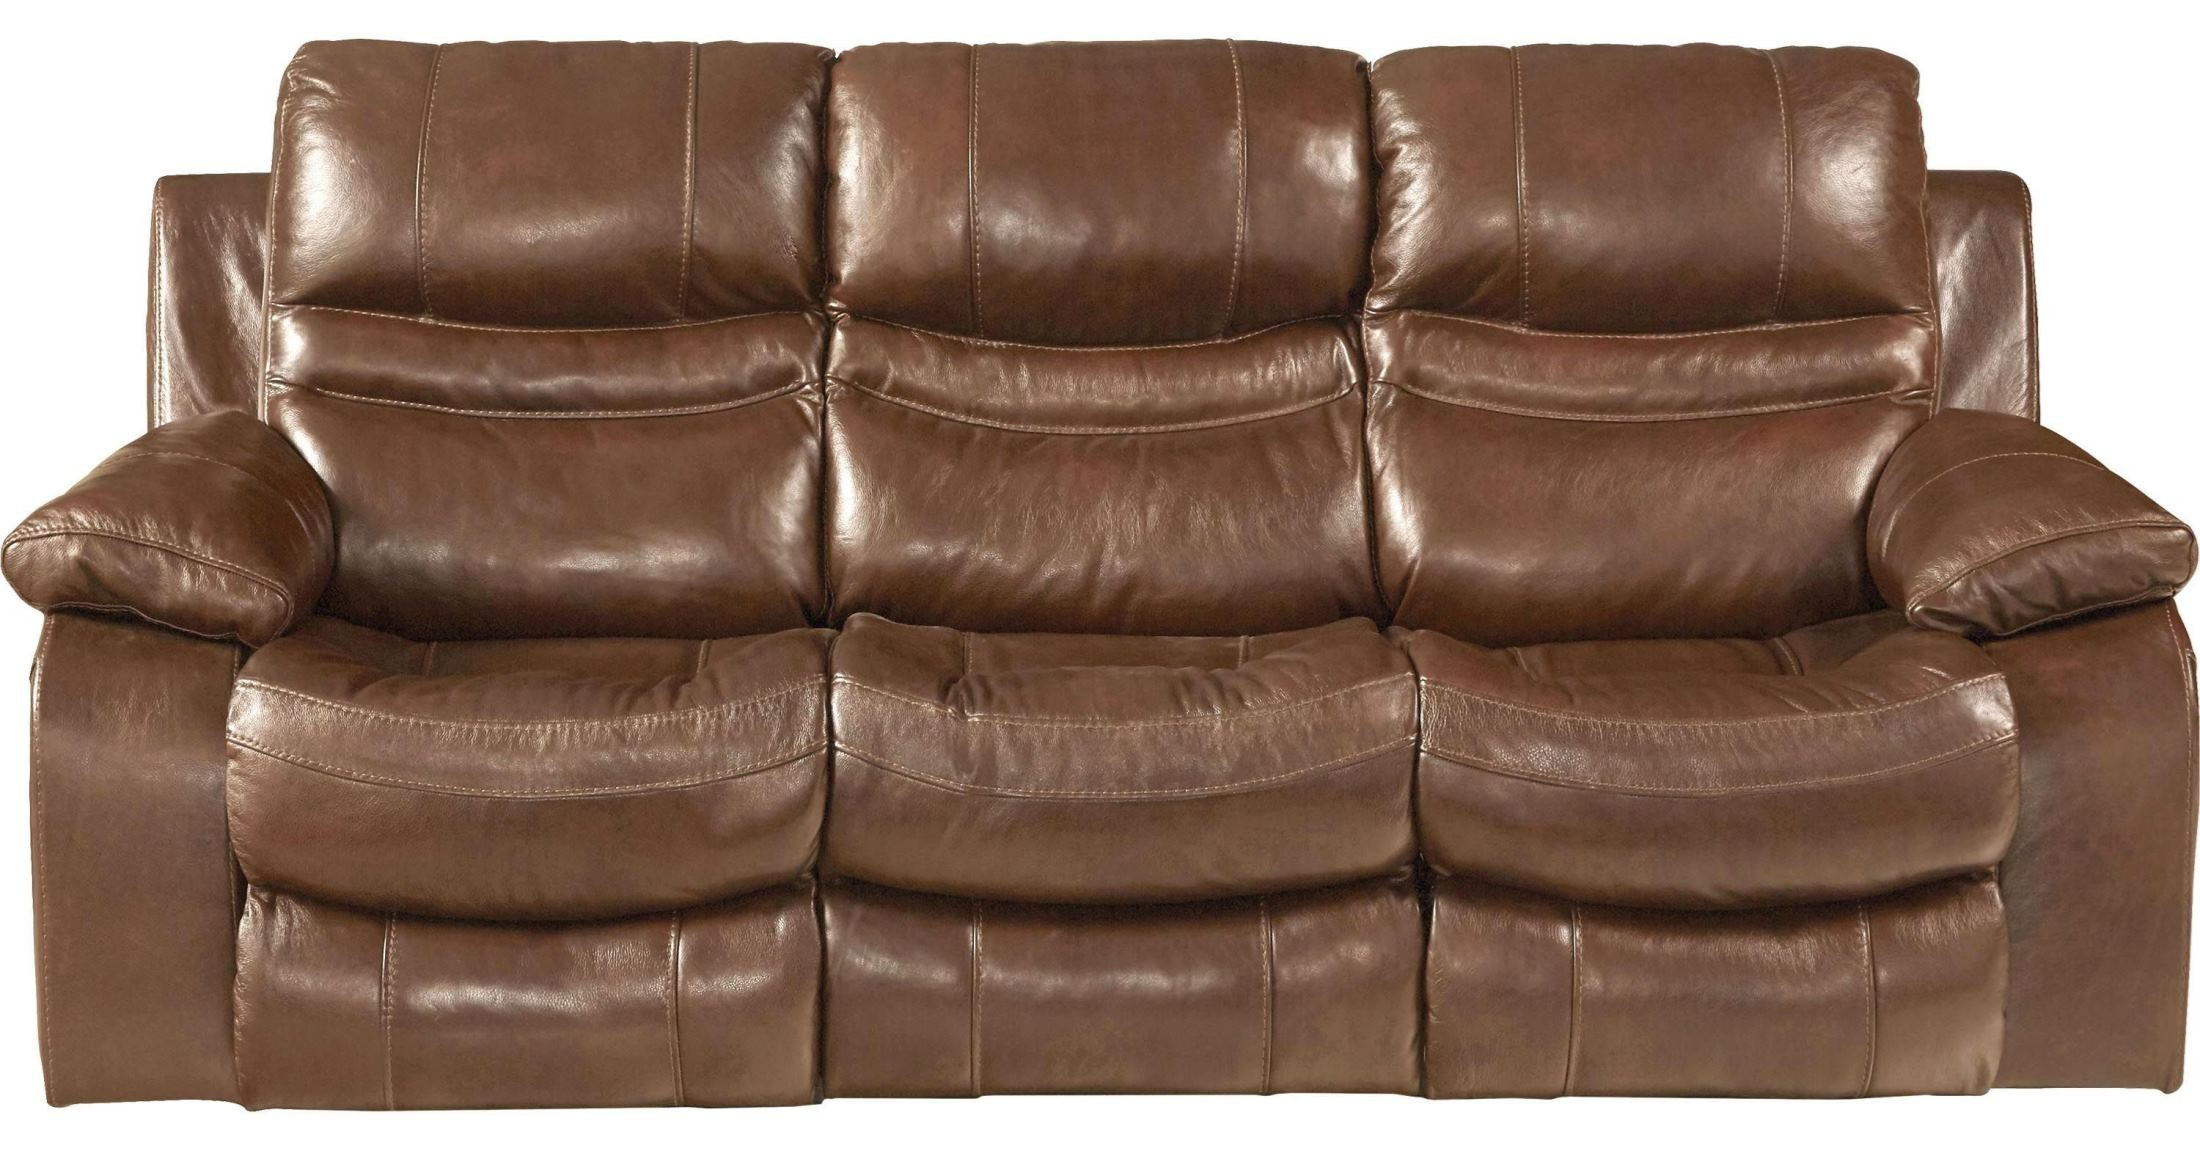 Patton Chesnut Power Lay Flat Reclining Sofa From Catnapper Coleman Furniture